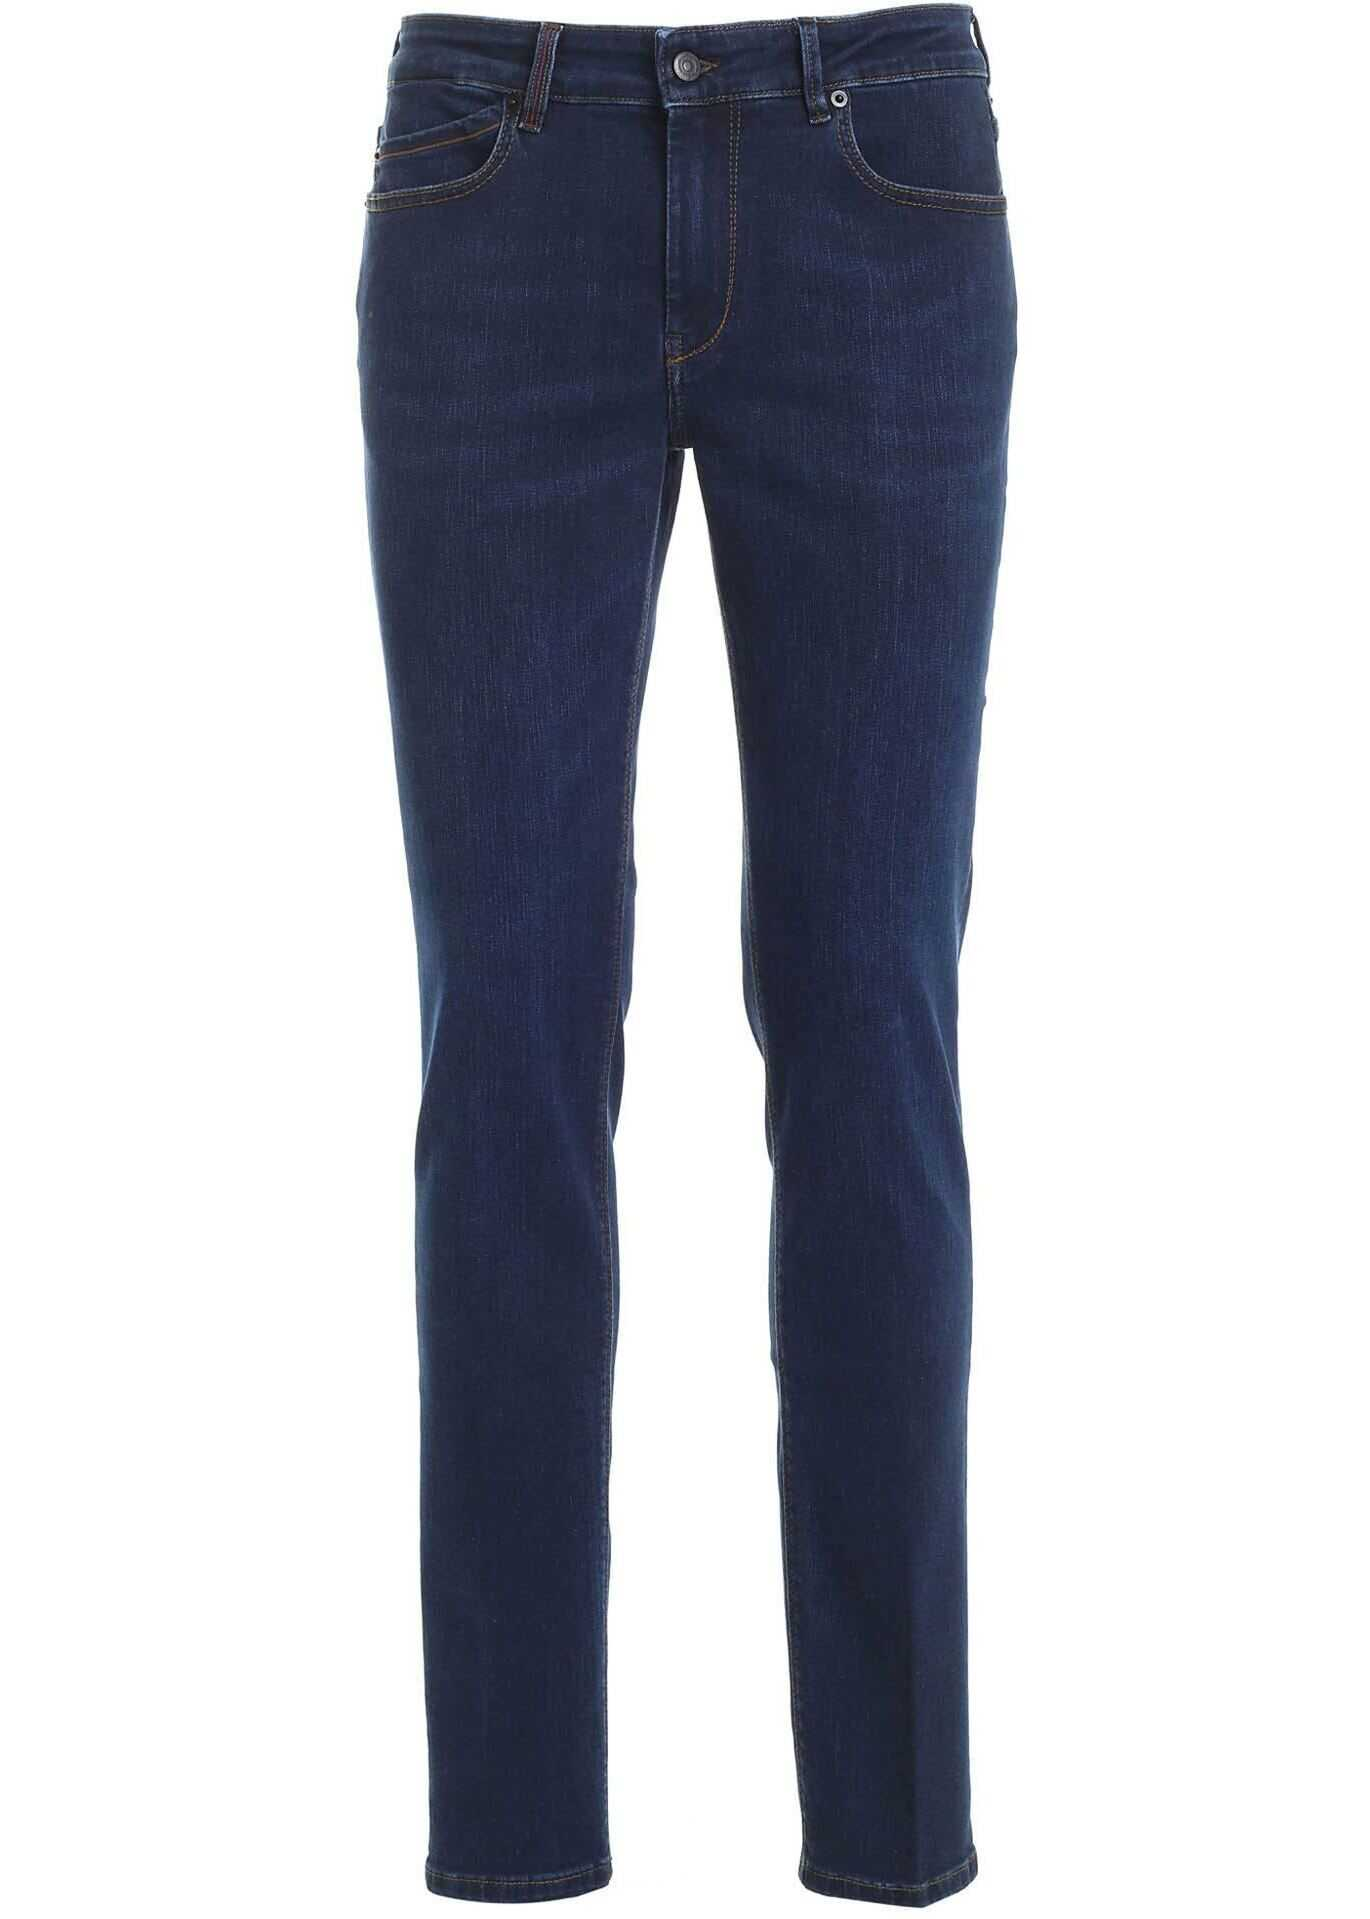 Hogan 5-Pocket Jeans In Blue Blue imagine